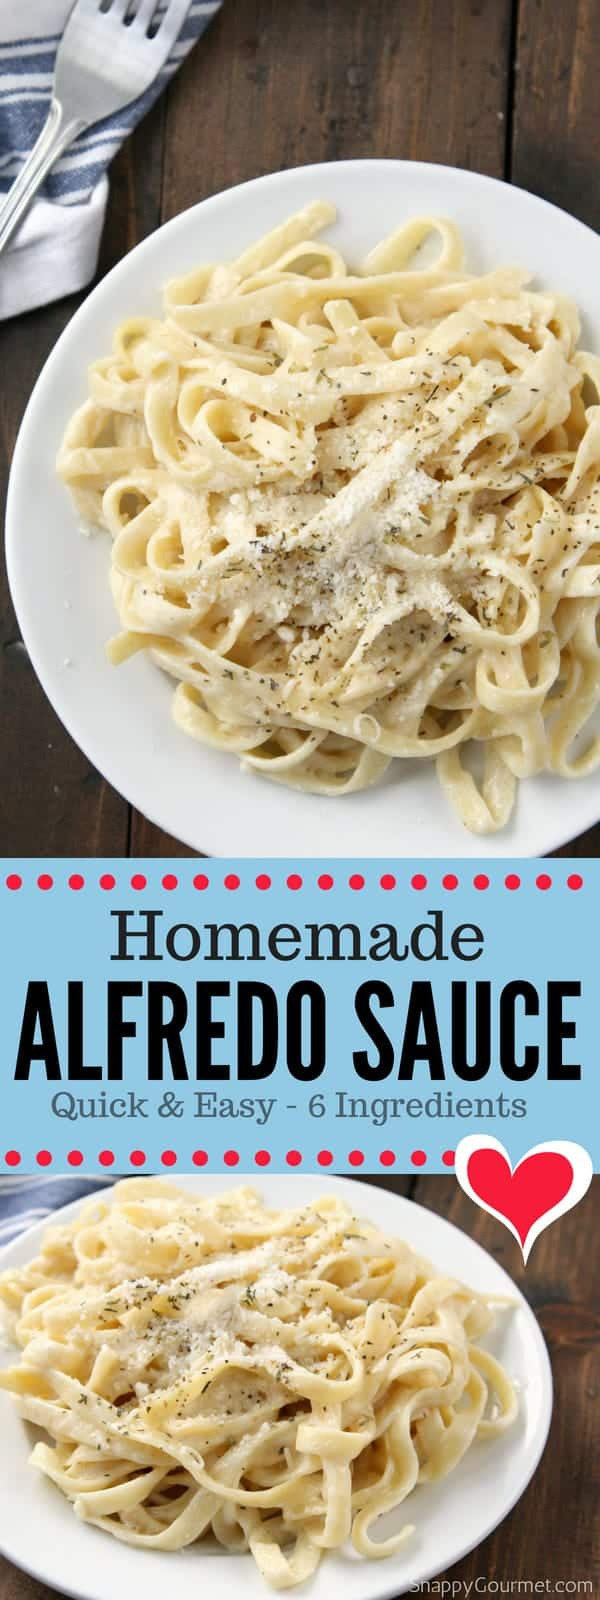 Homemade Alfredo Sauce recipe, an easy alfredo sauce with garlic, cream, and Parmesan cheese.